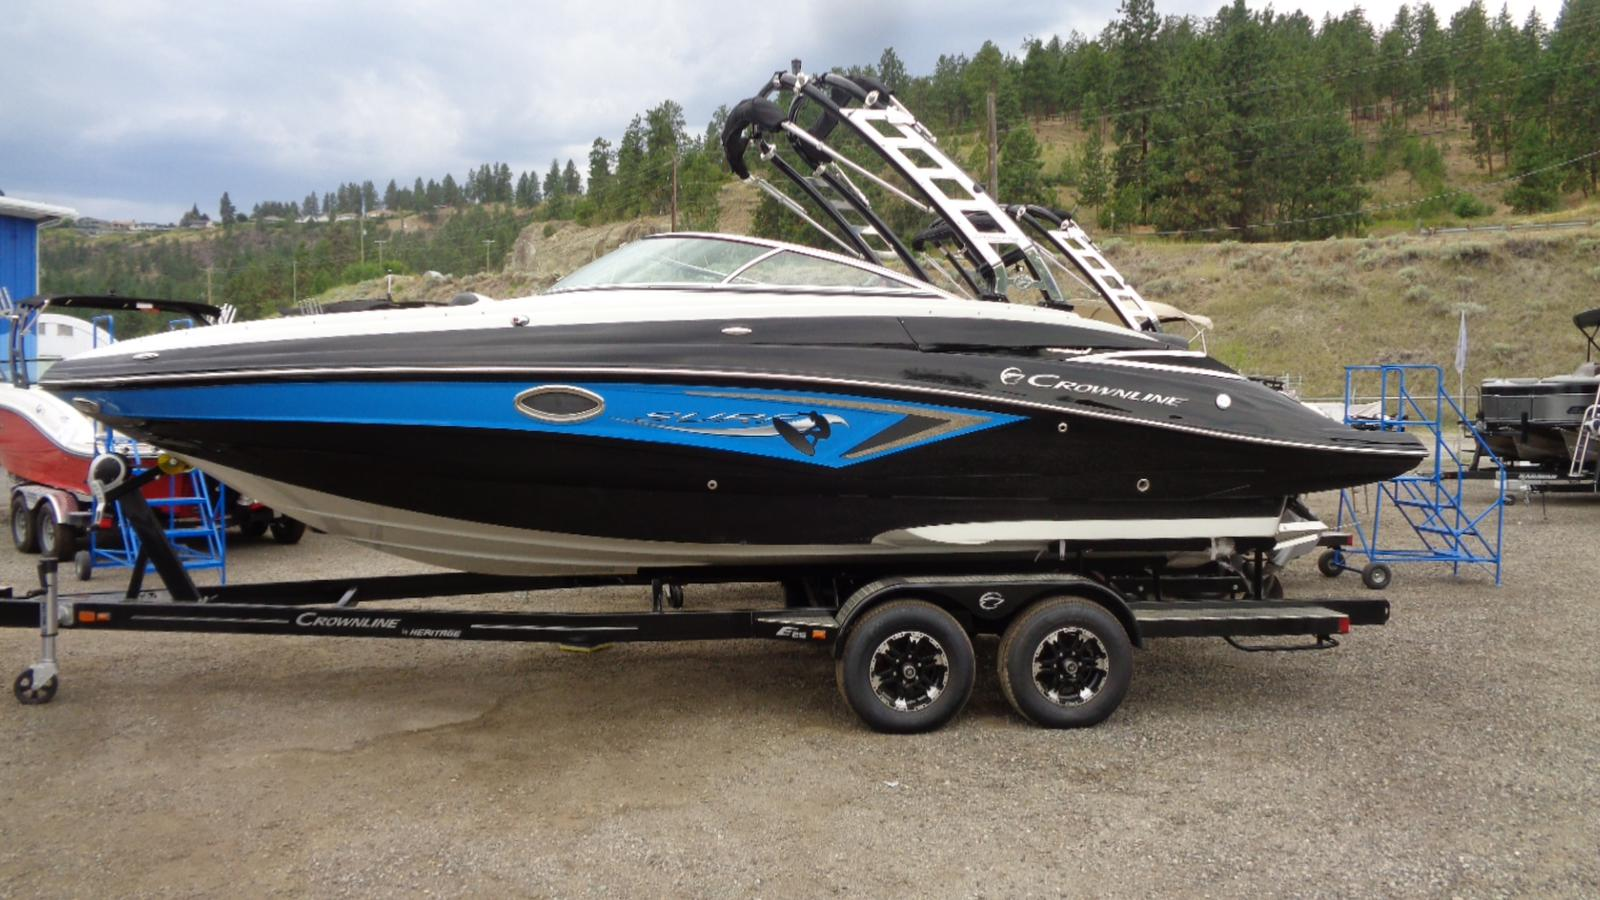 For Sale: 2019 Crownline E235 Surf 24ft<br/>Dockside Marine Centre, LTD.